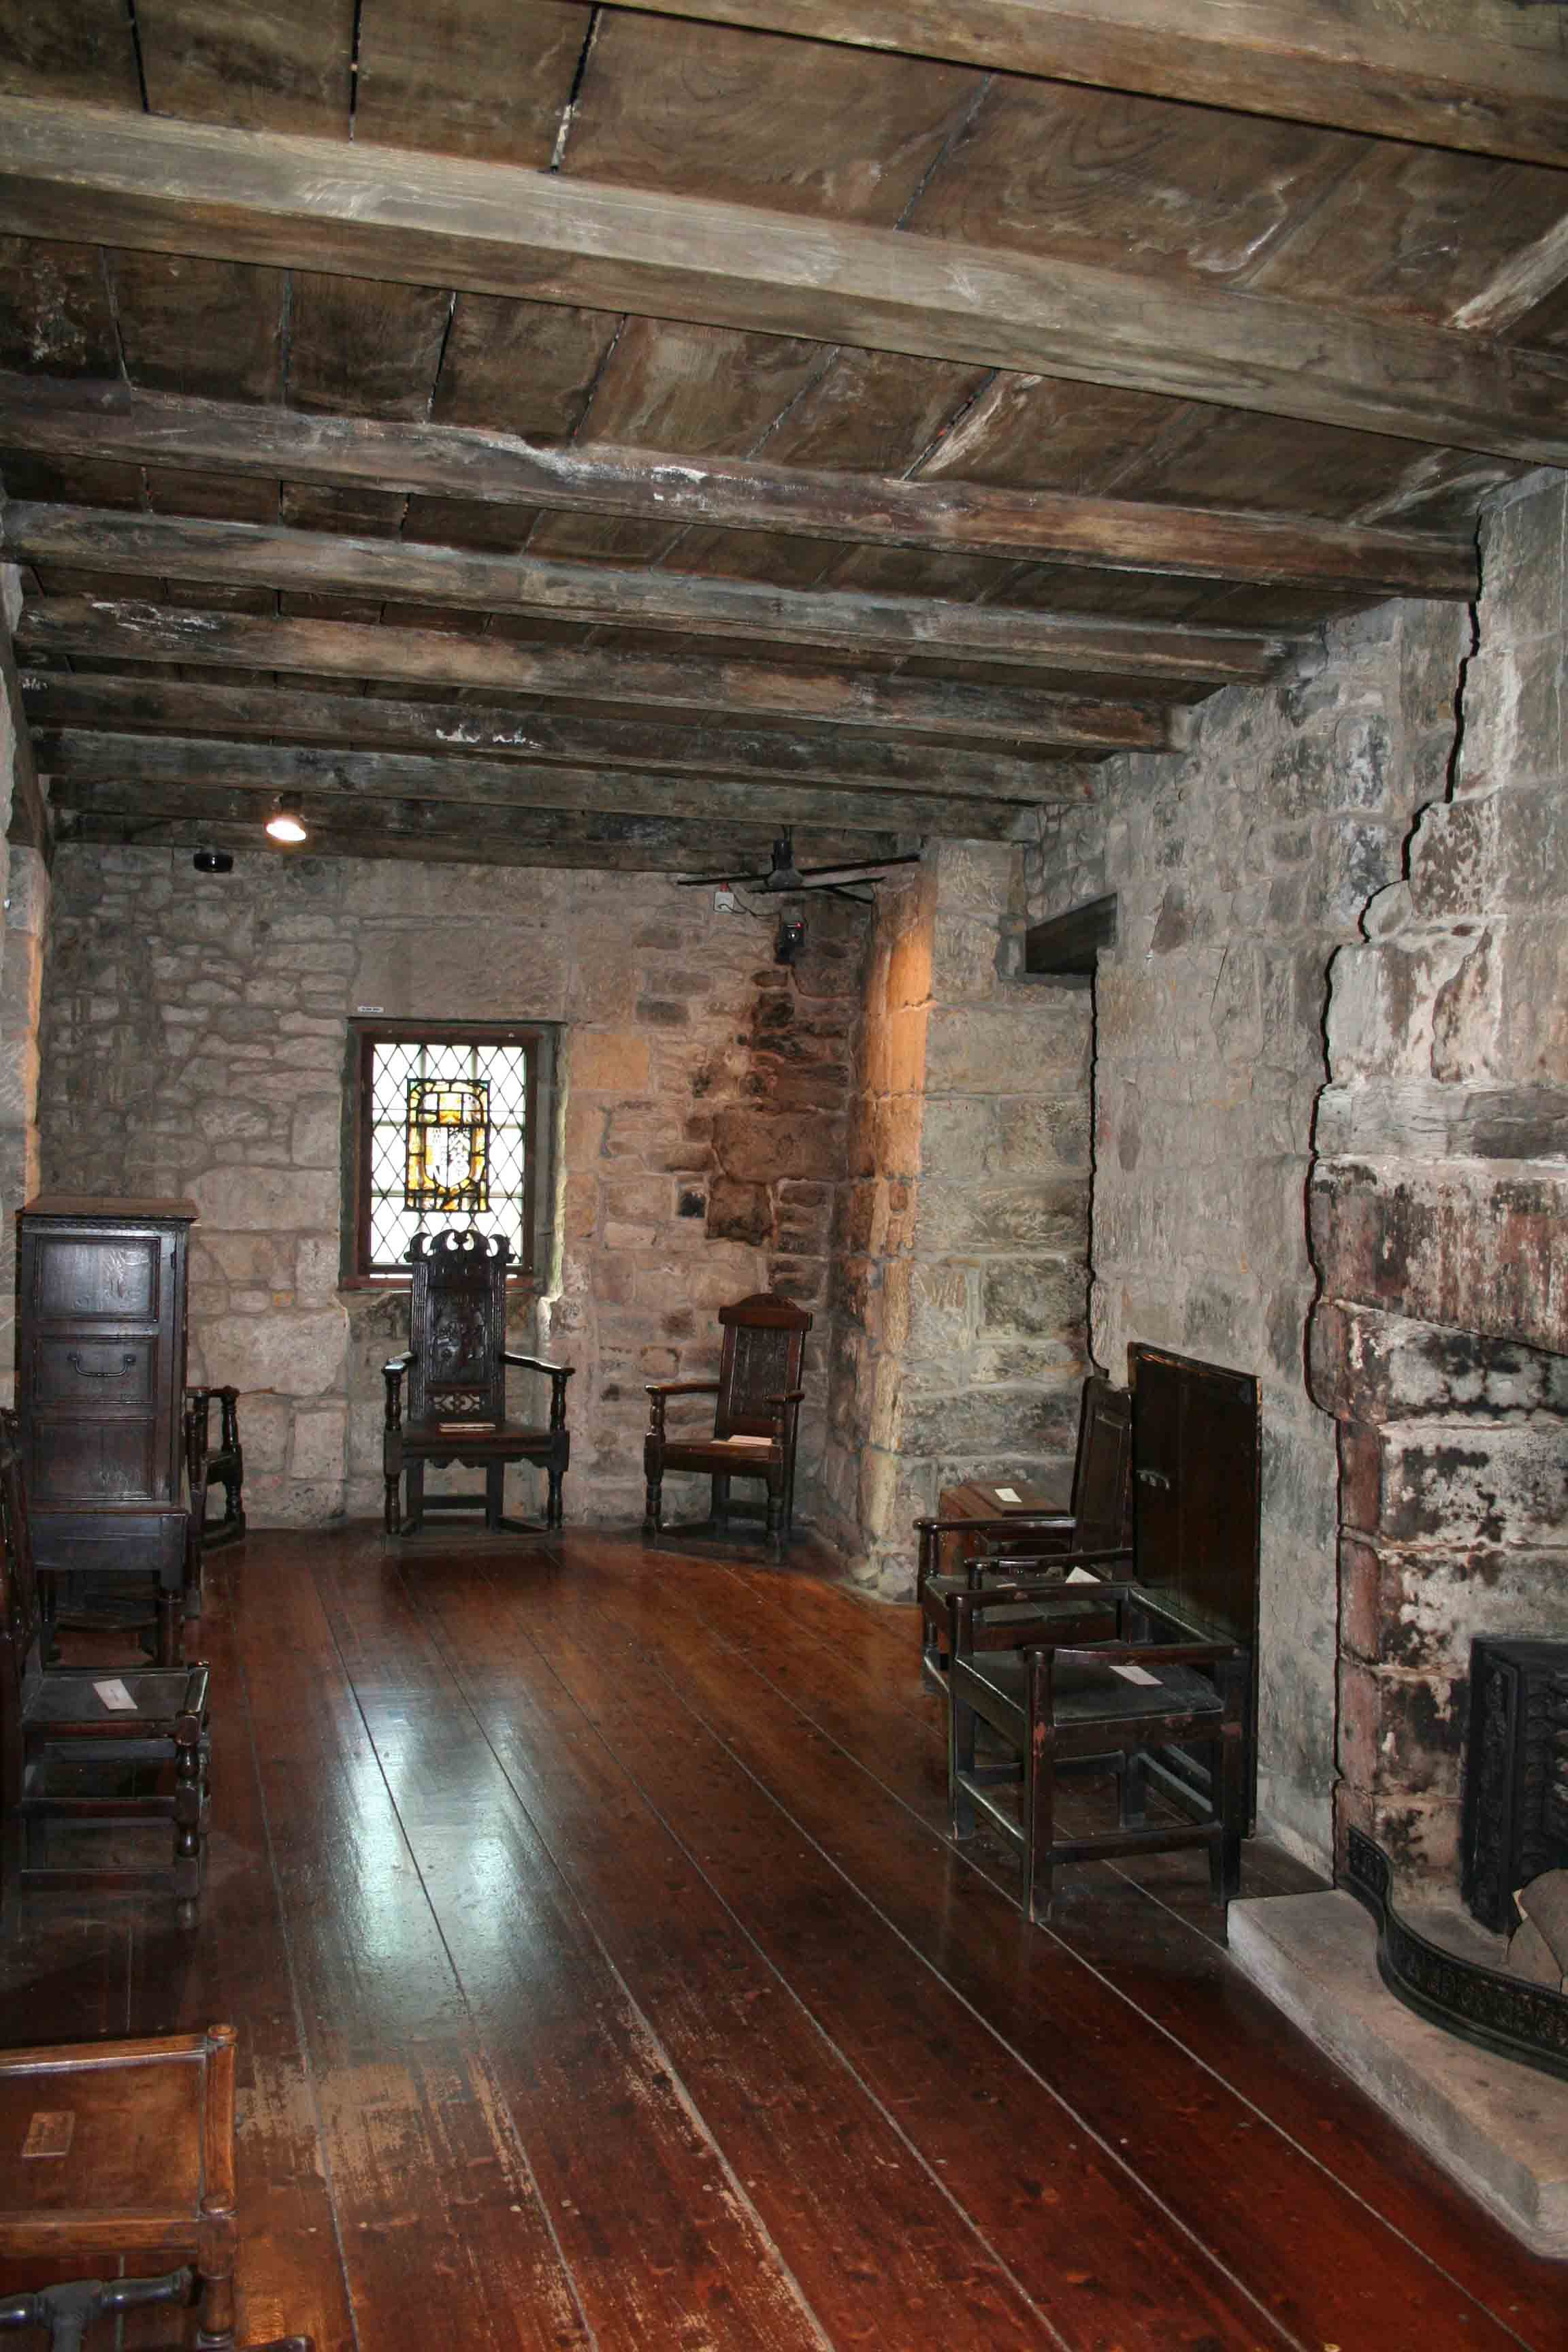 inside provand 39 s lordship the oldest house in glasgow scottishhistory http writtentoorder. Black Bedroom Furniture Sets. Home Design Ideas